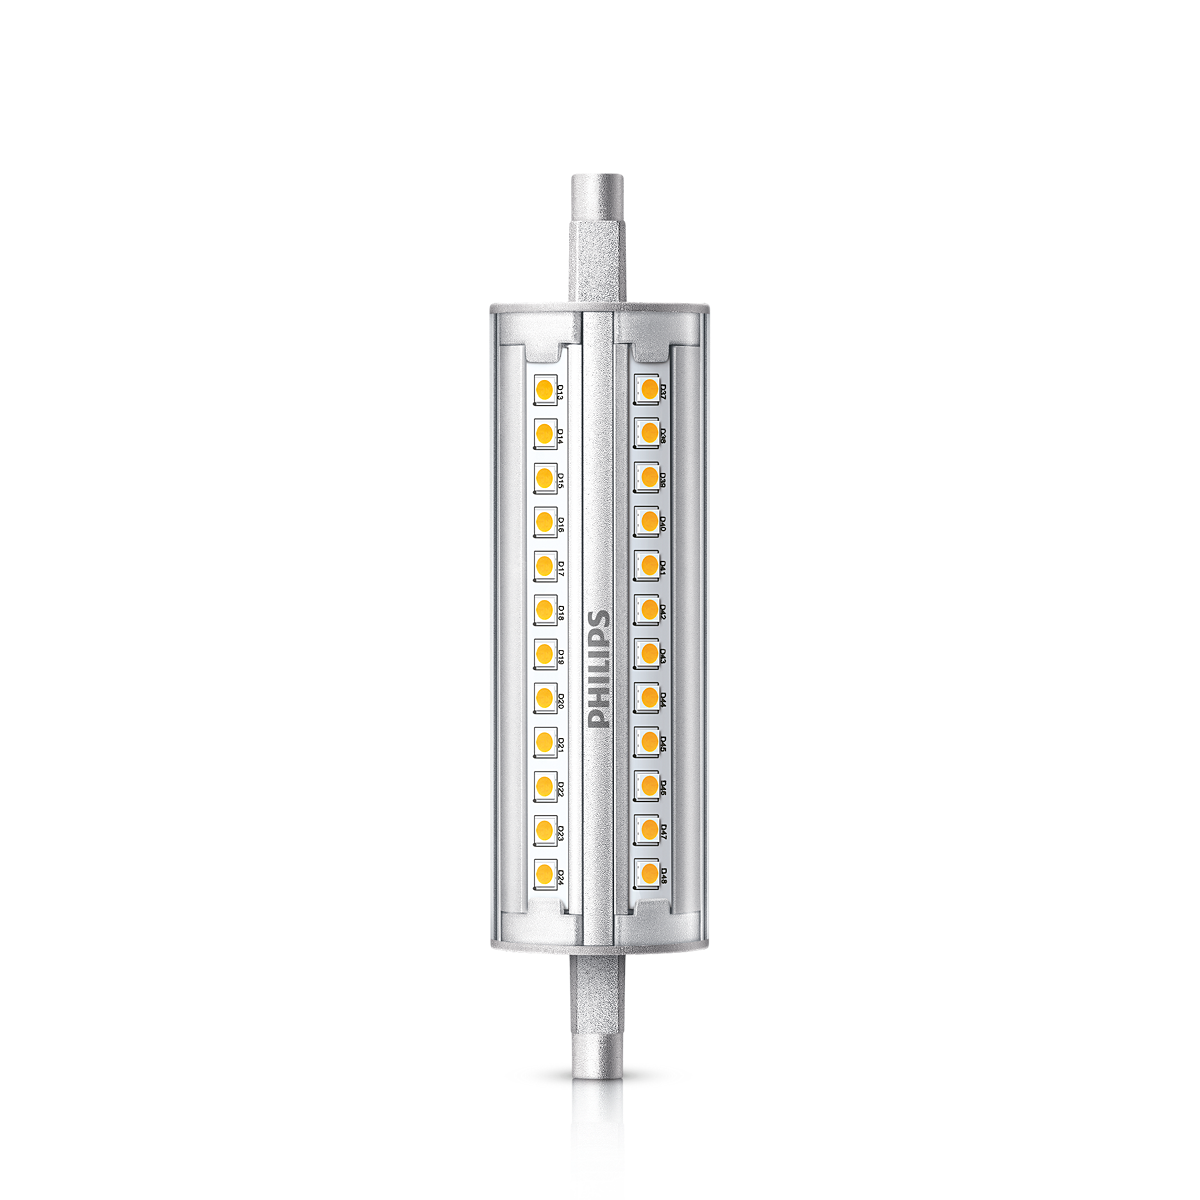 CorePro LED lineales R7S